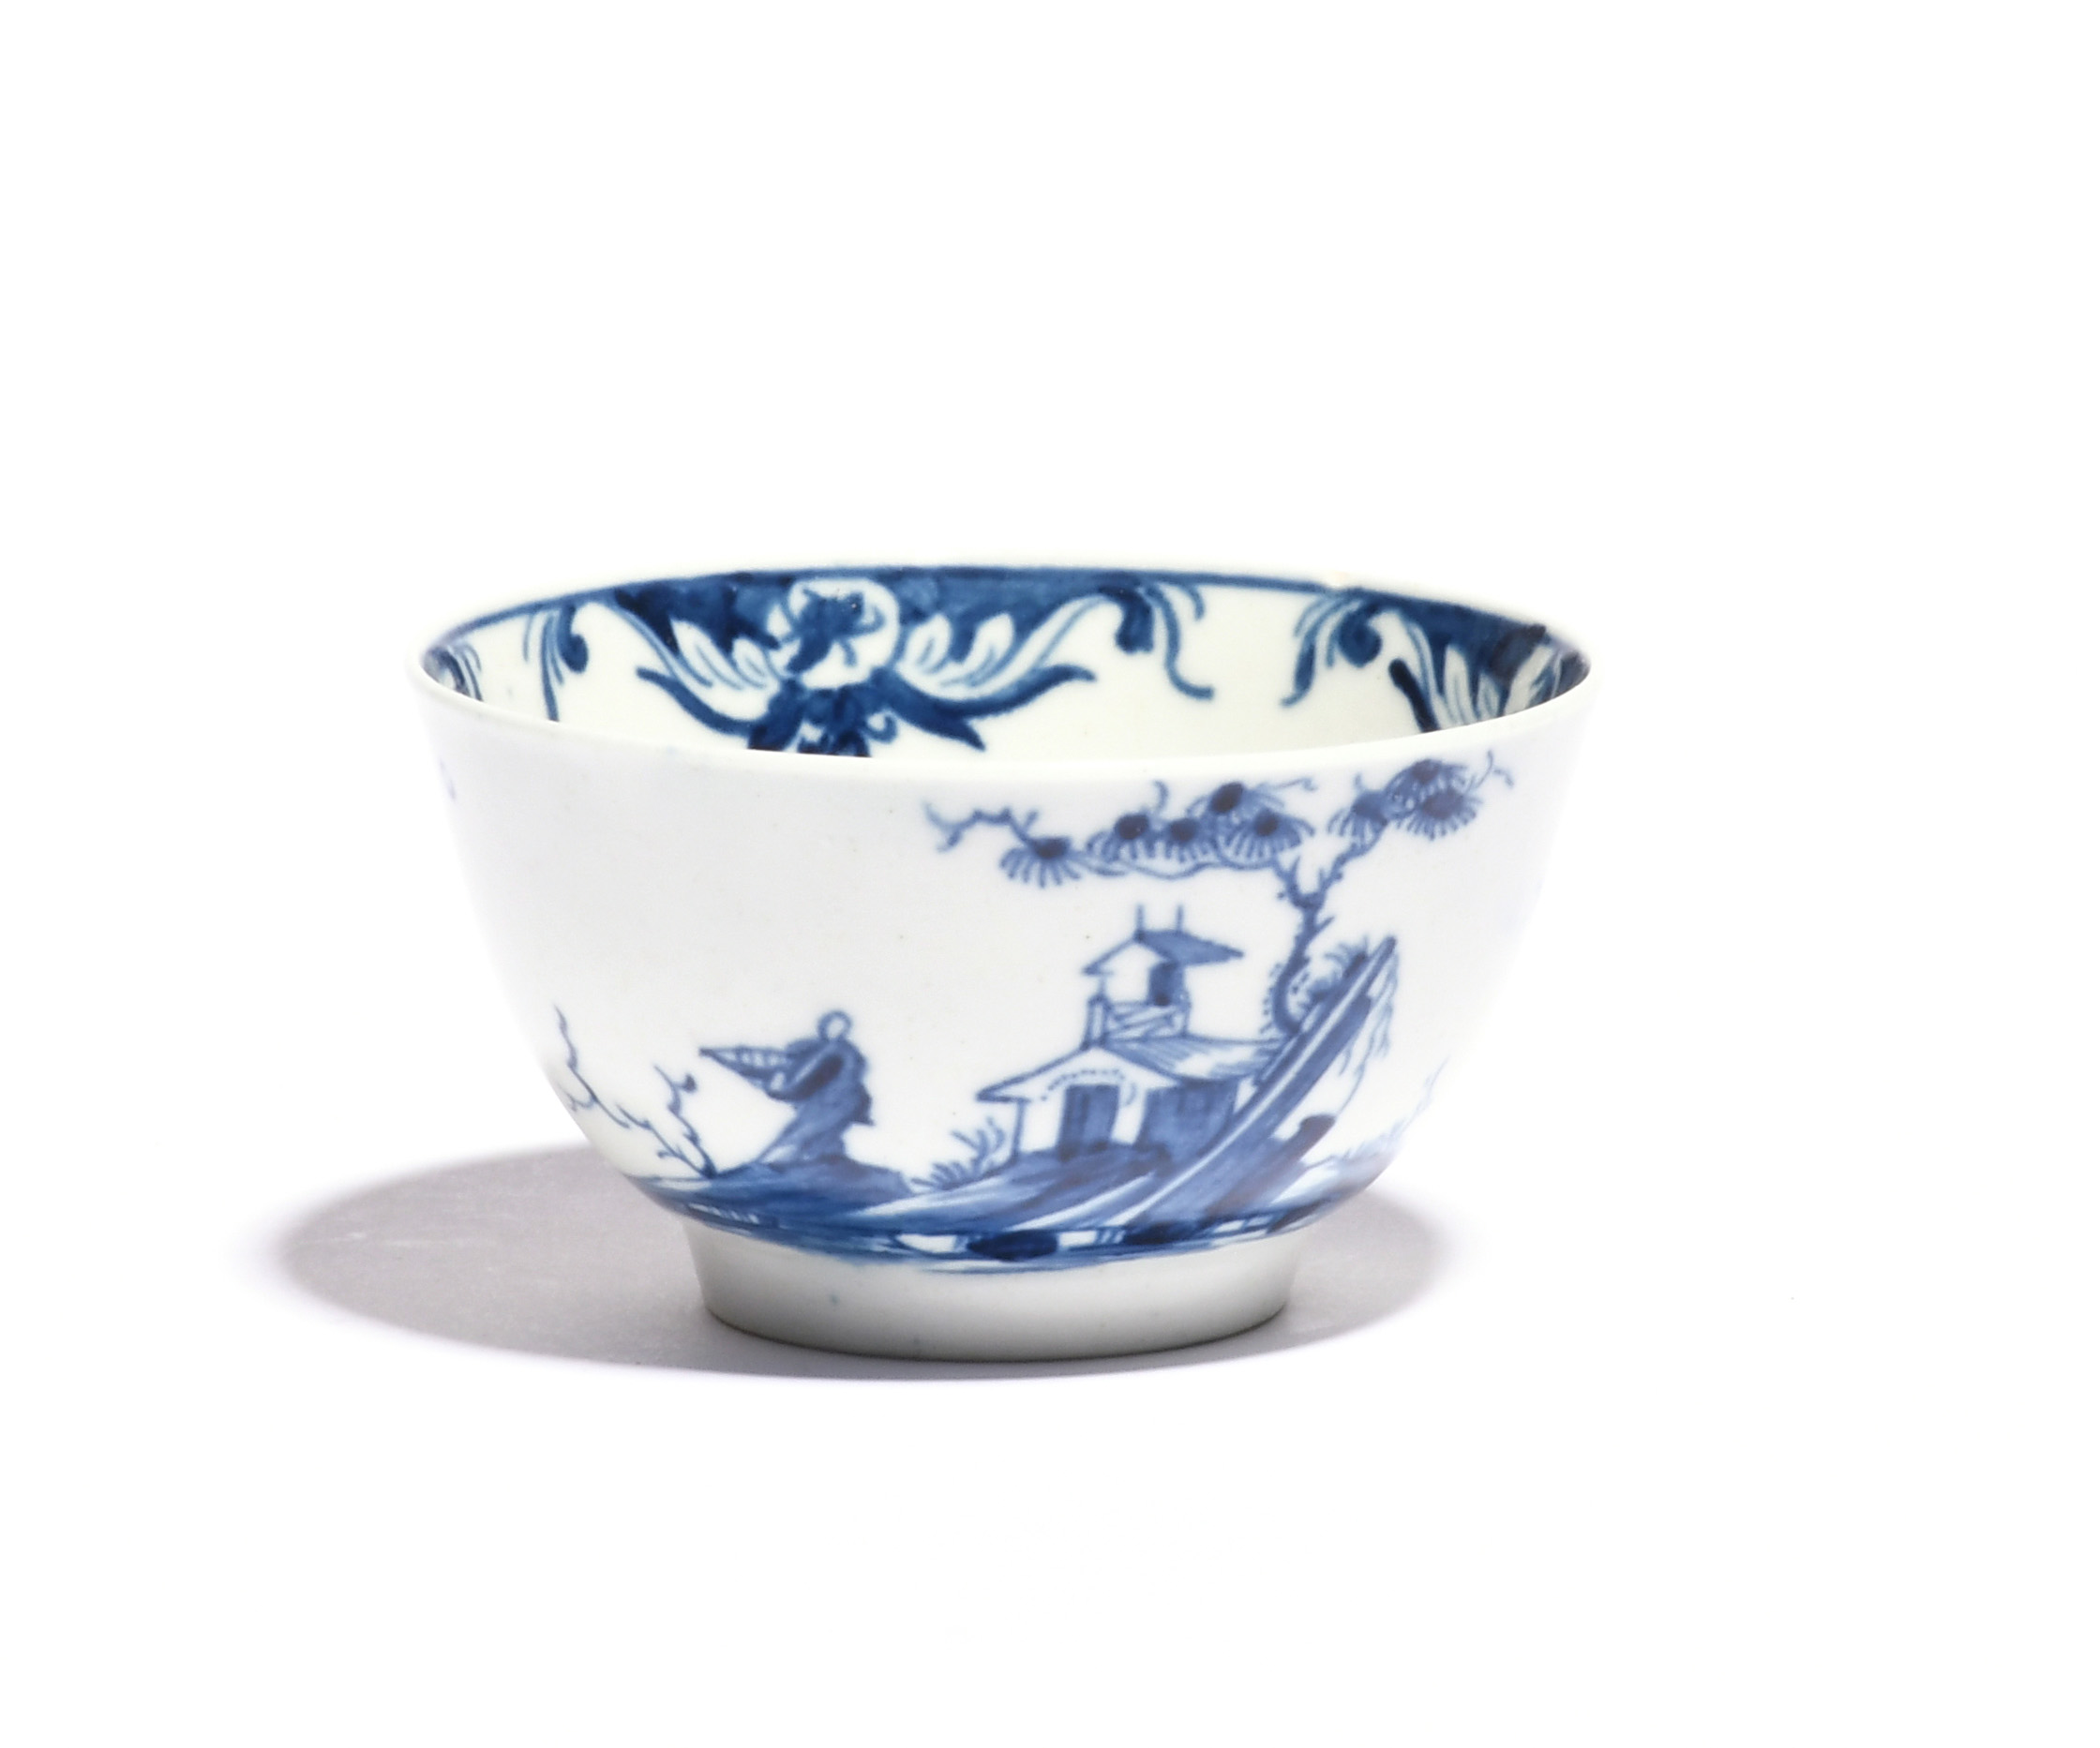 A rare Worcester blue and white teabowl c.1758, painted with the Diagonal Rock Island pattern, a